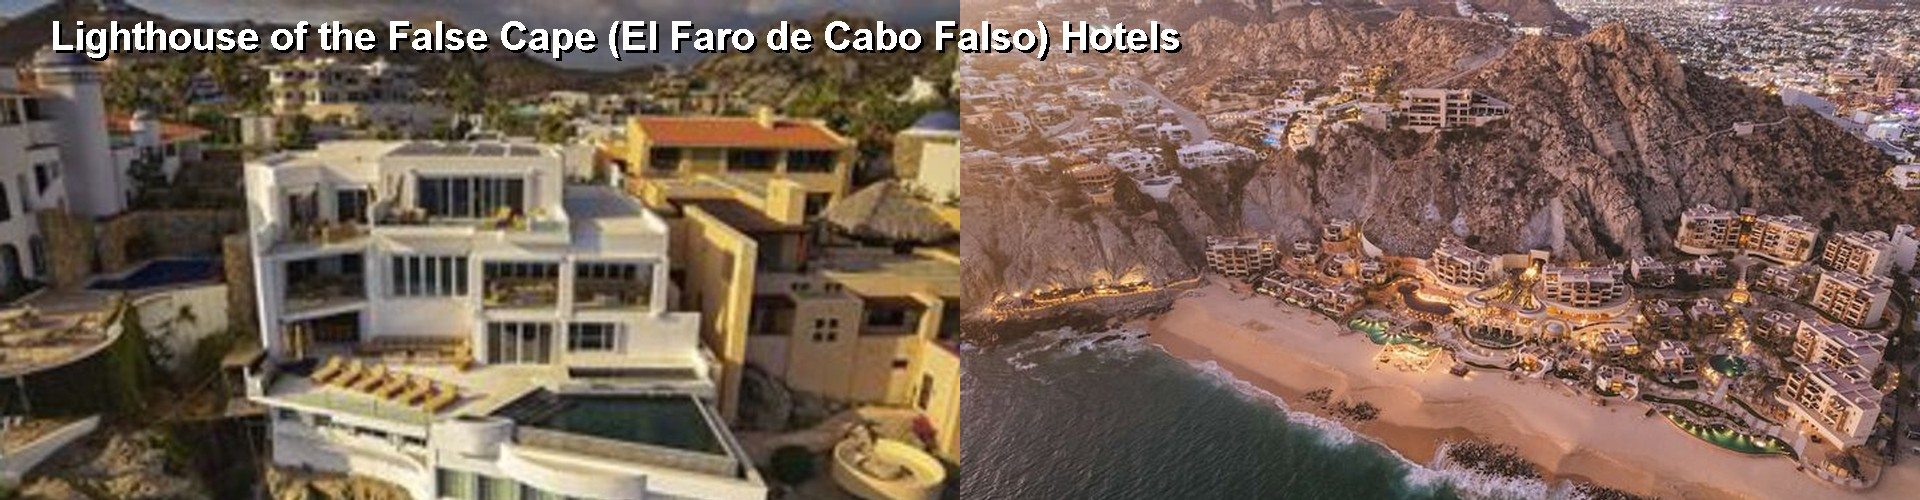 5 Best Hotels near Lighthouse of the False Cape (El Faro de Cabo Falso)